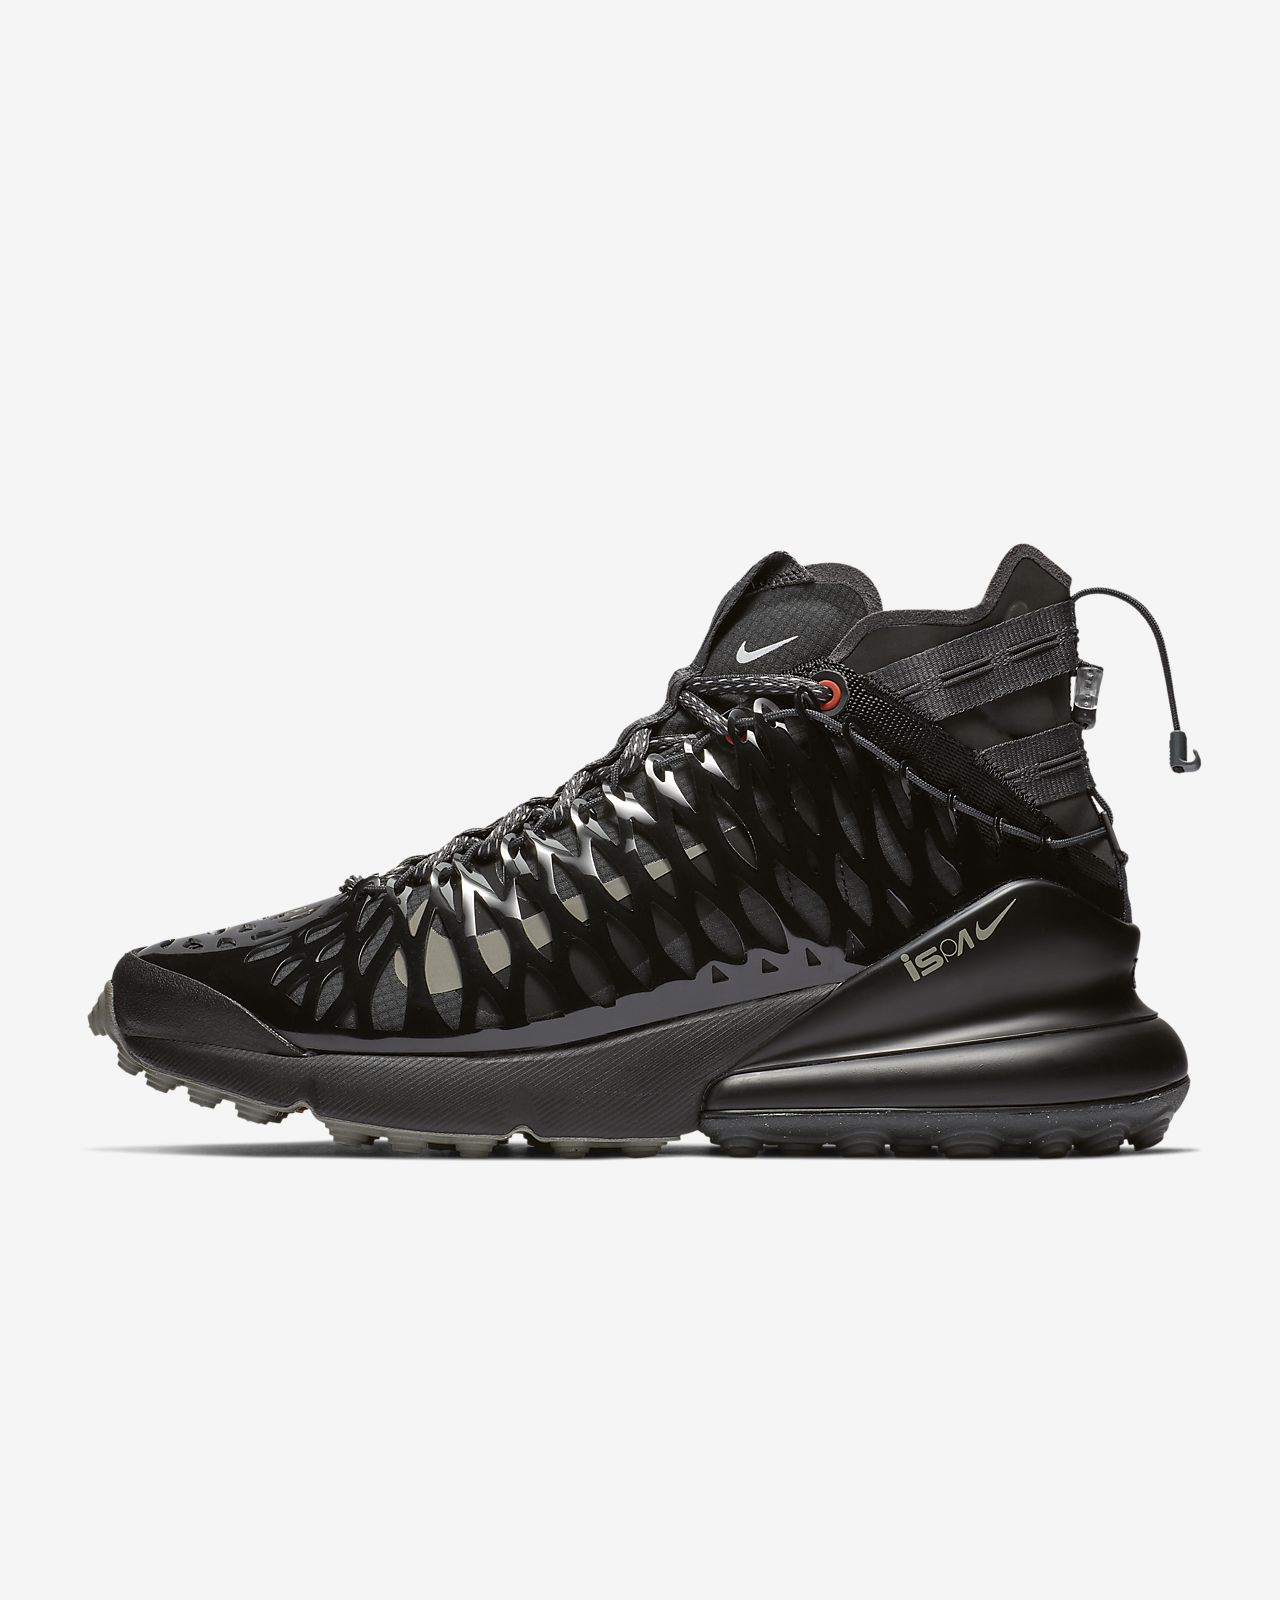 big sale 9dd14 4c4d4 ... Nike Air Max 270 ISPA Men s Shoe